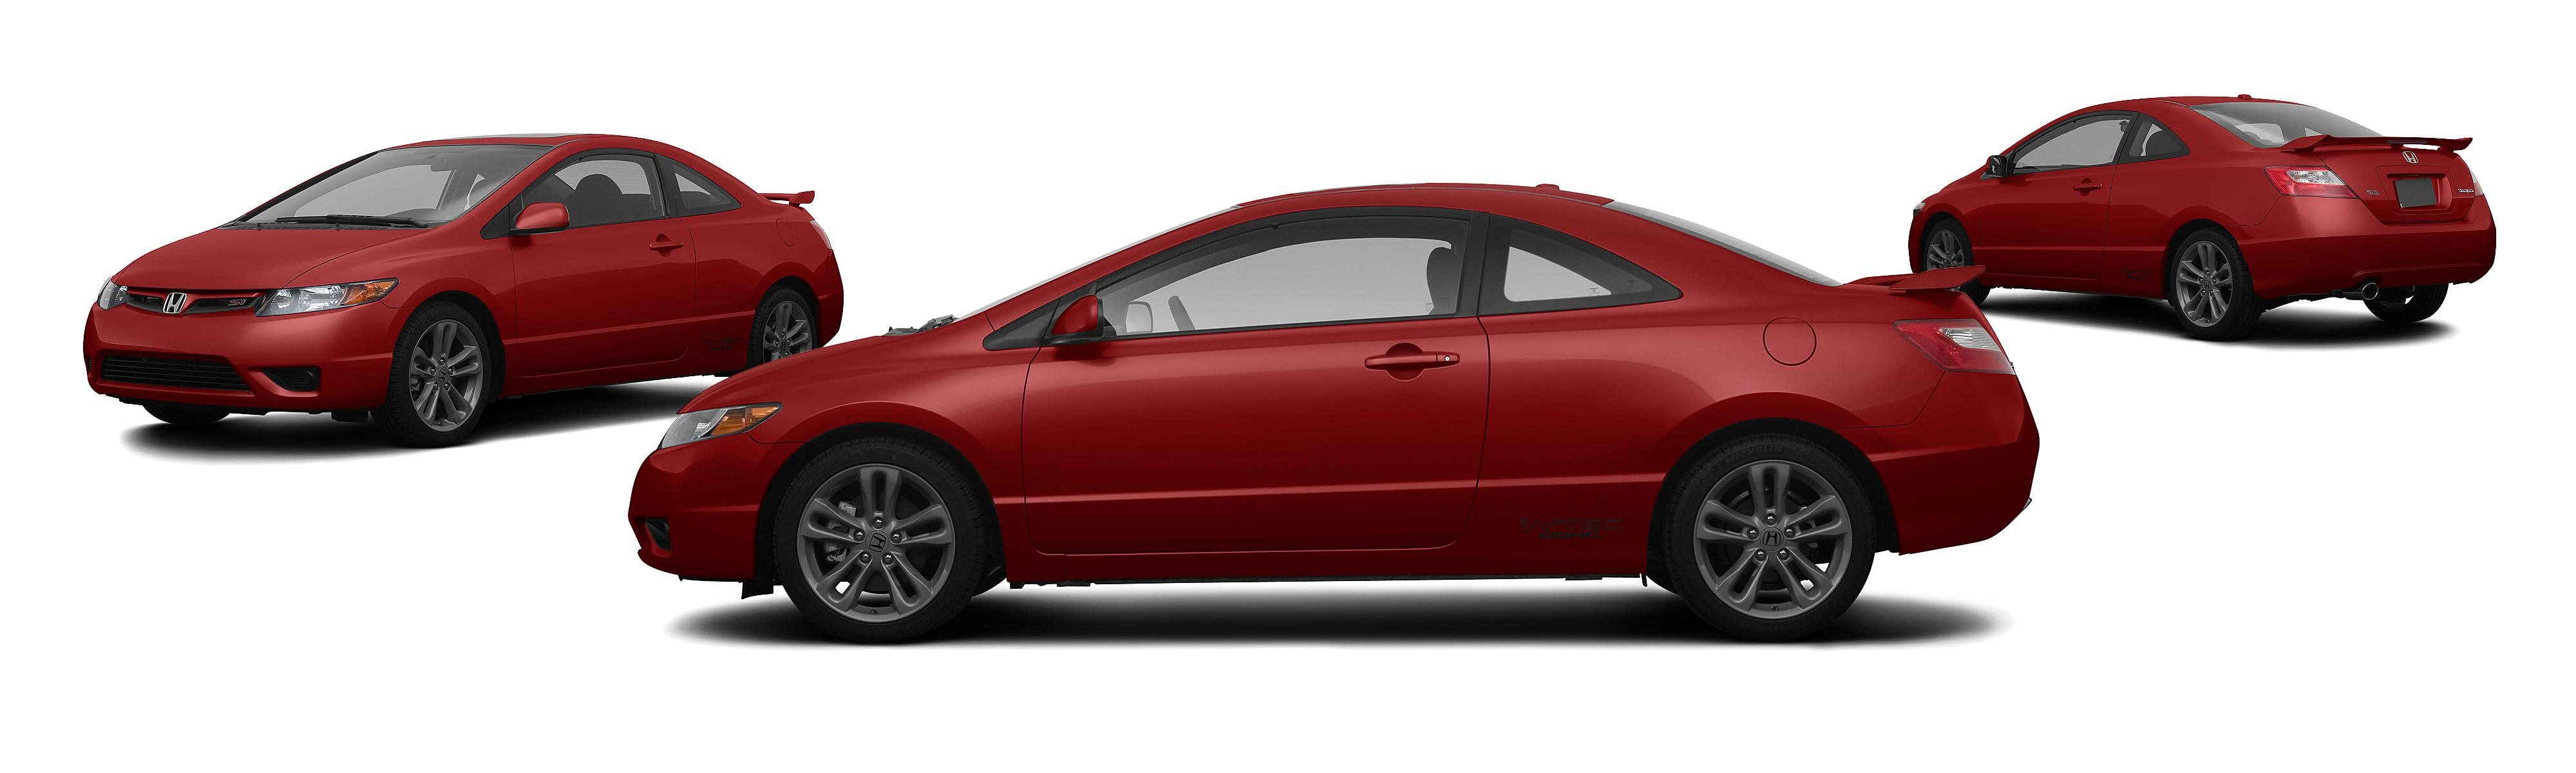 2008 honda civic lx coupe owners manual